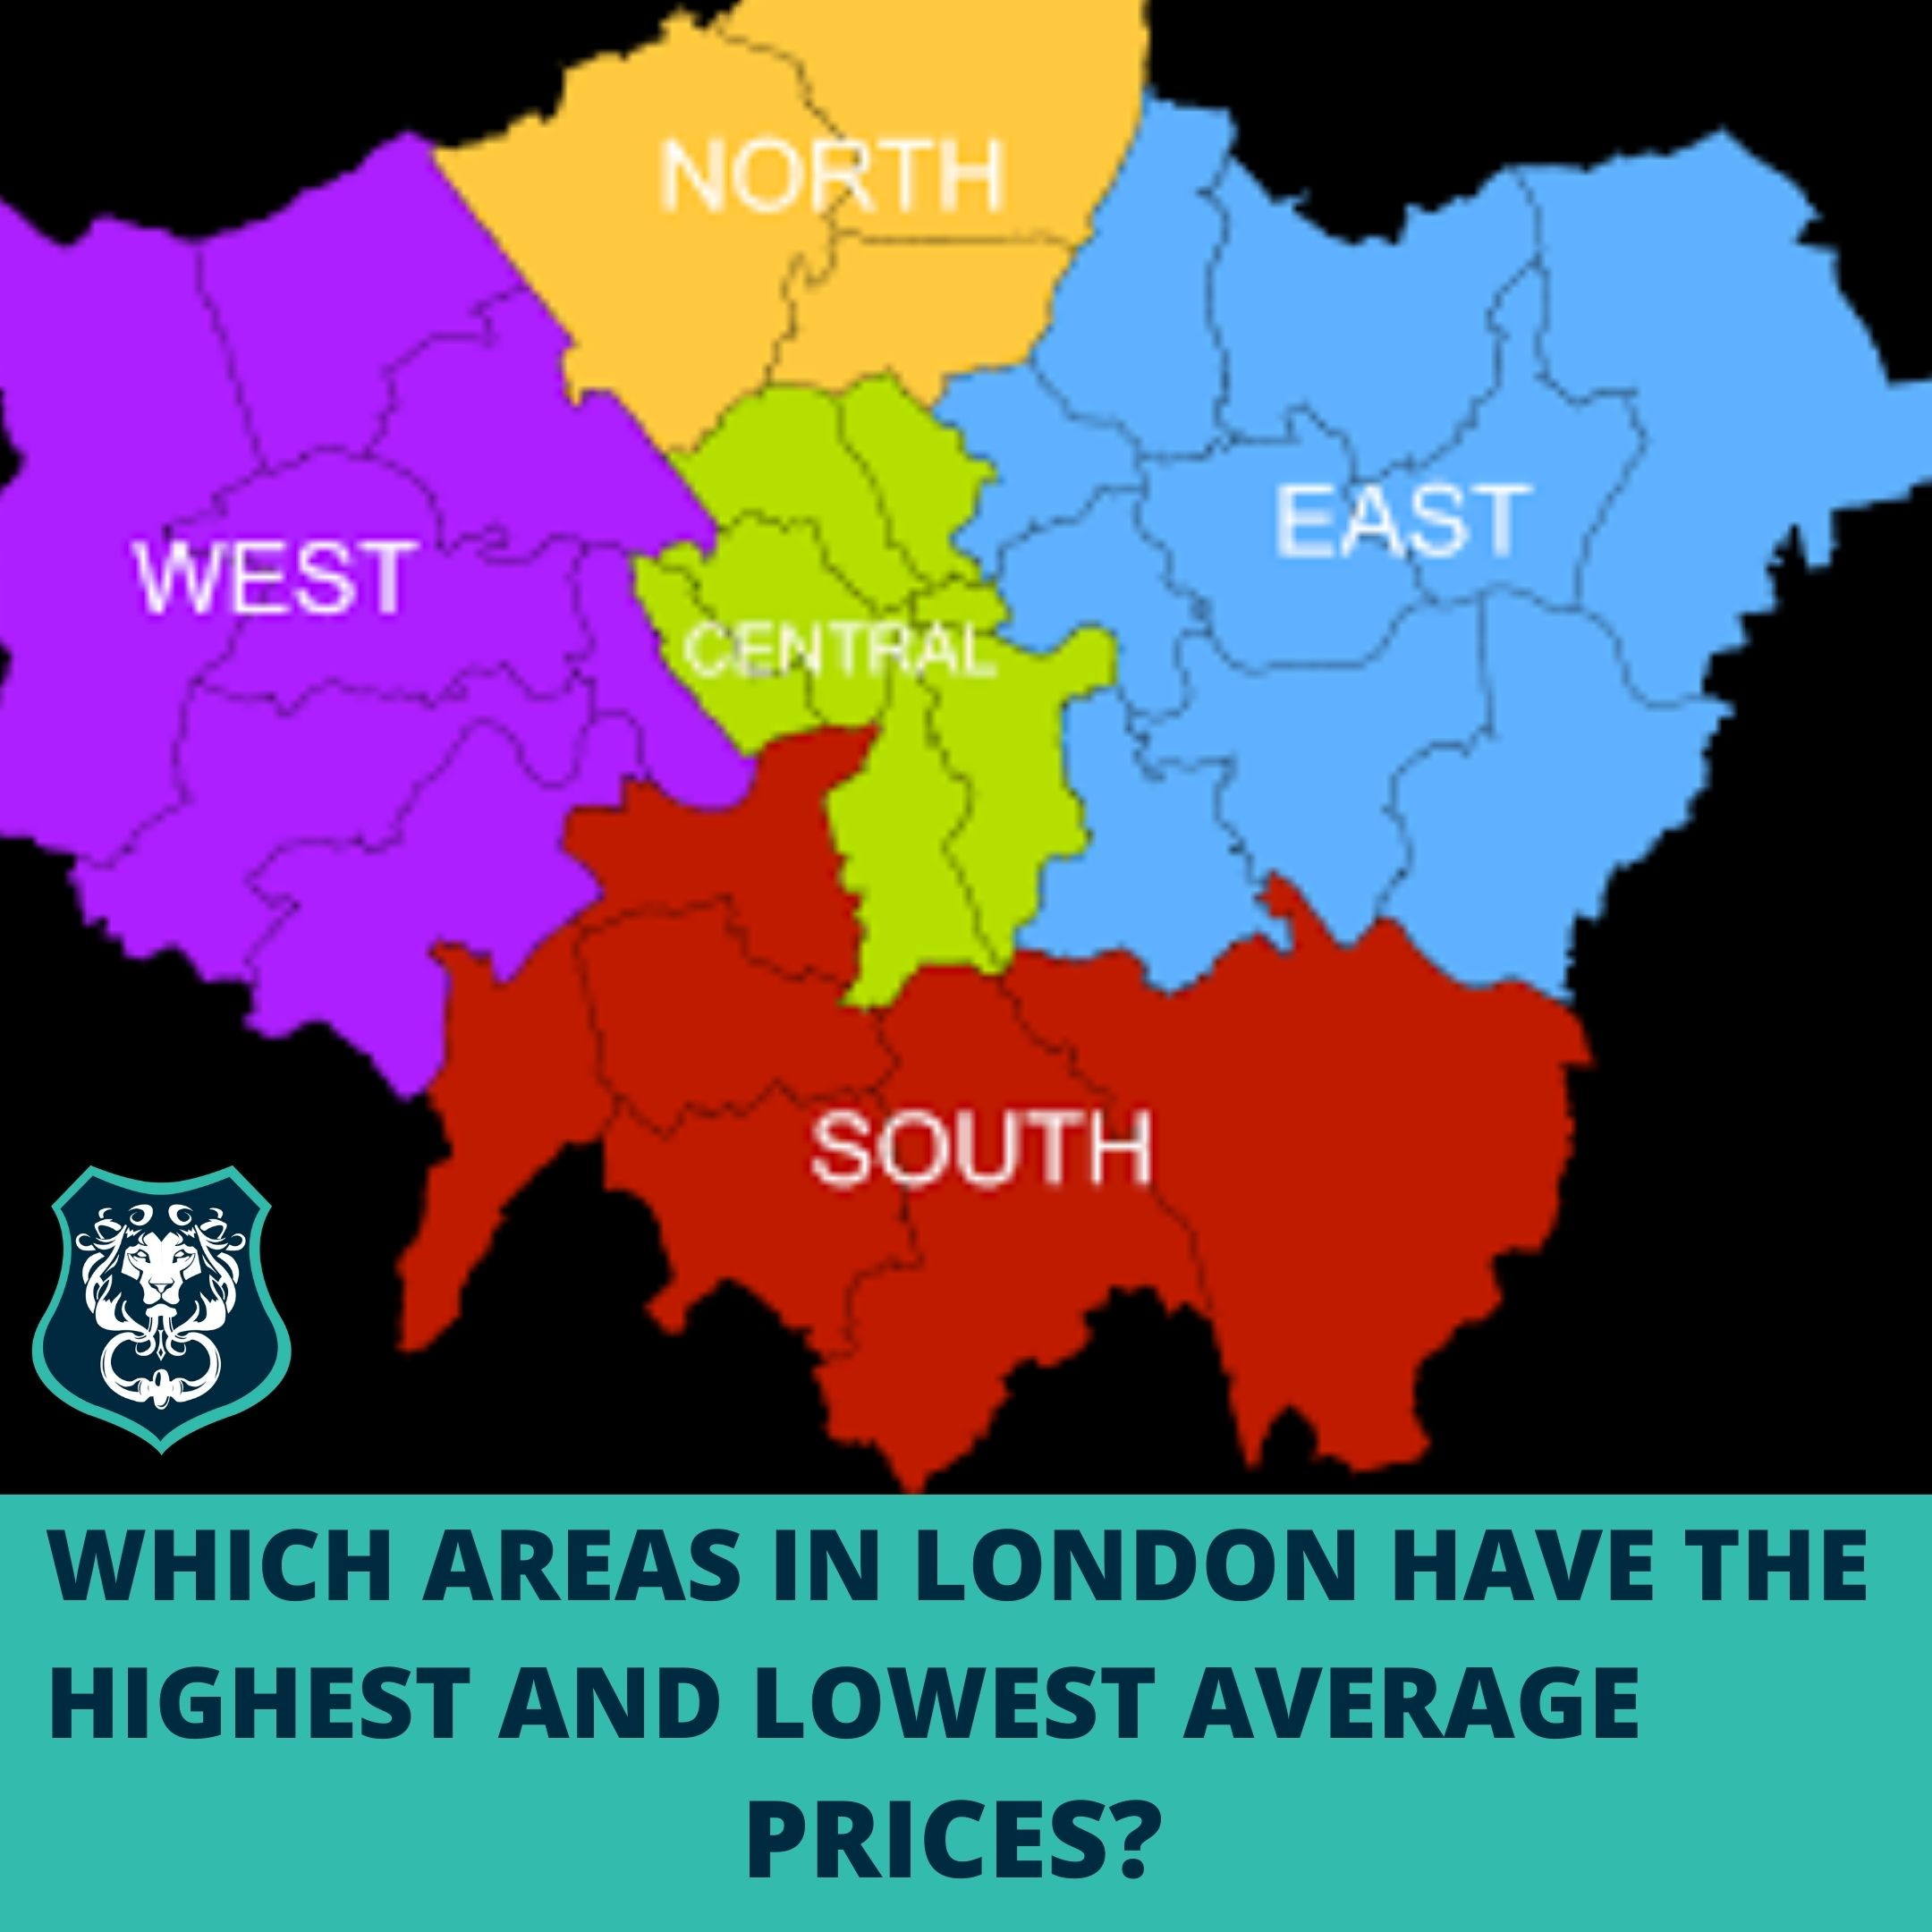 WHICH AREAS IN LONDON HAVE THE HIGHEST AND LOWEST AVERAGE PRICES?